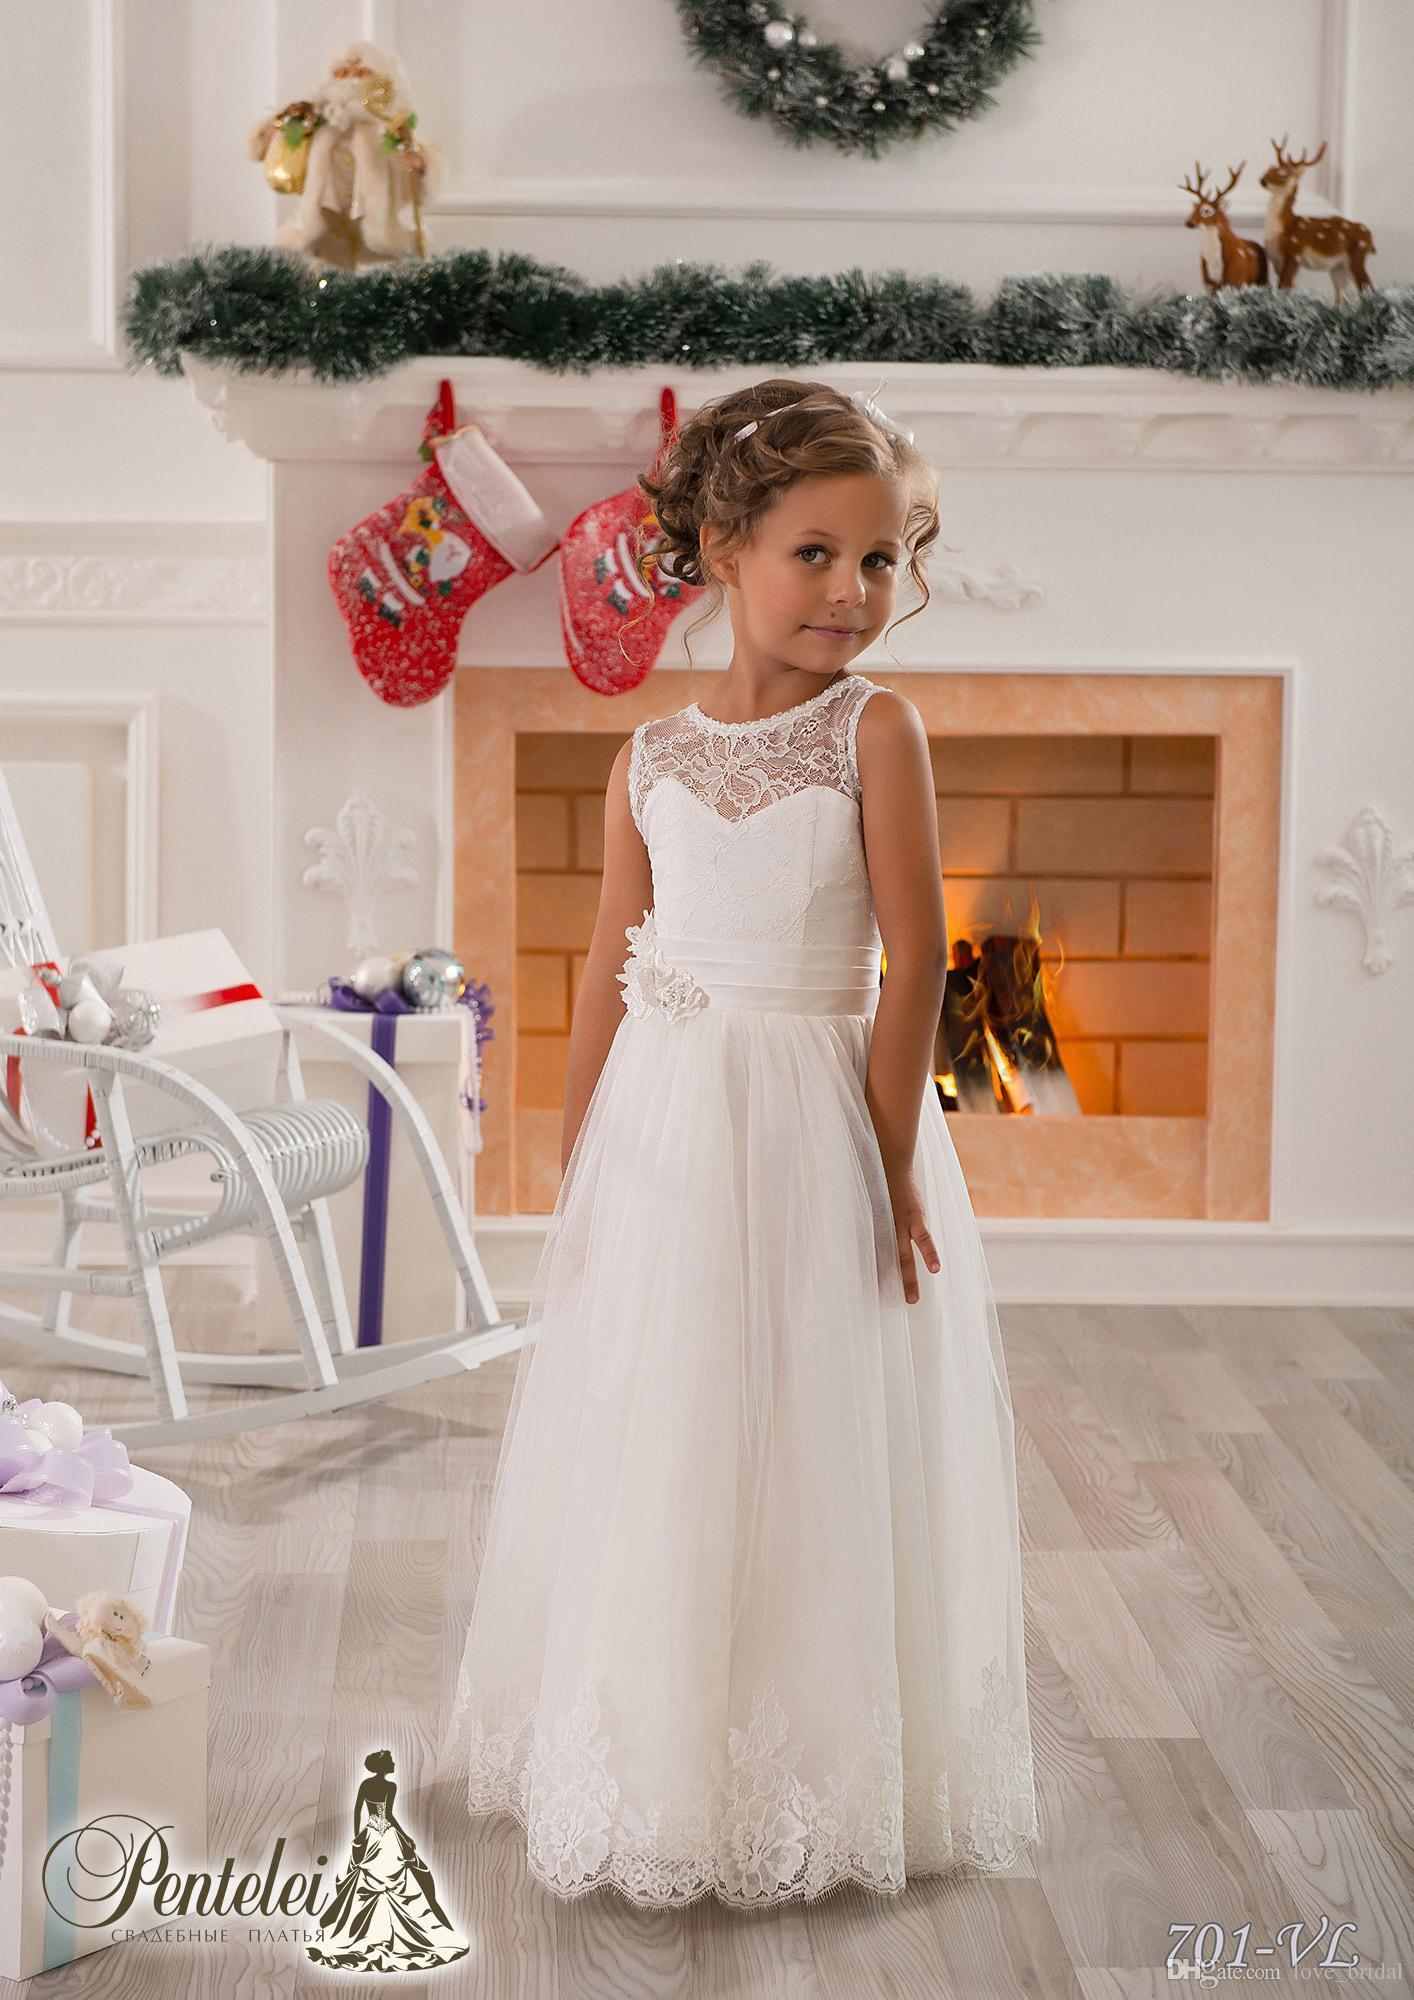 Children dresses for wedding fashion dresses children dresses for wedding izmirmasajfo